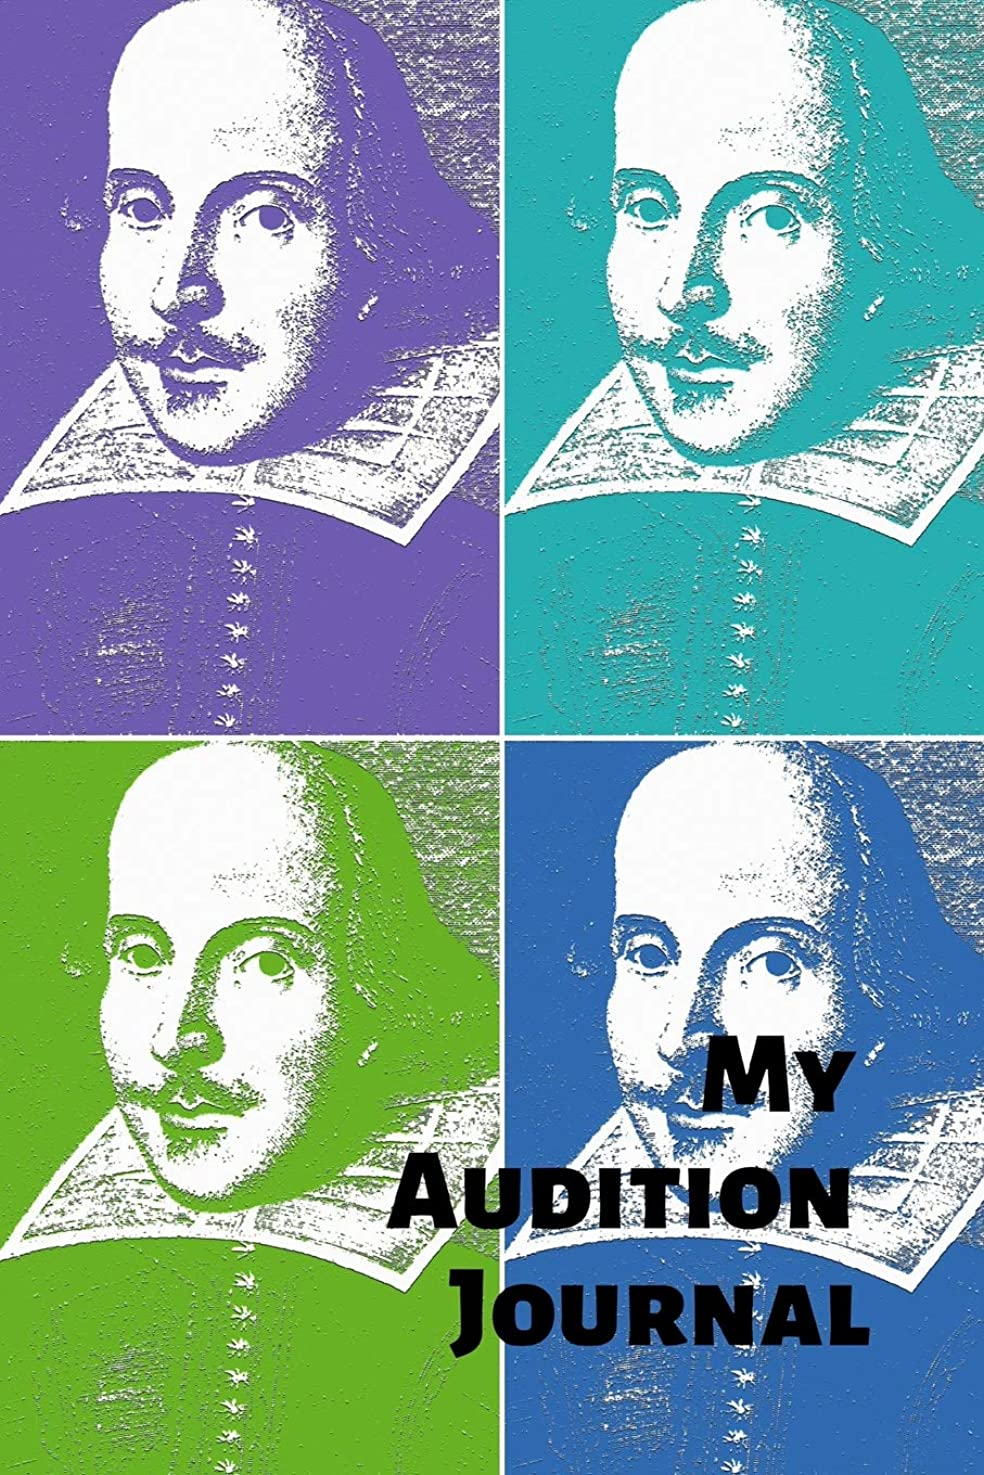 My Audition Journal: Keeping Track of Auditions, Call-backs, Monologues and more for actors